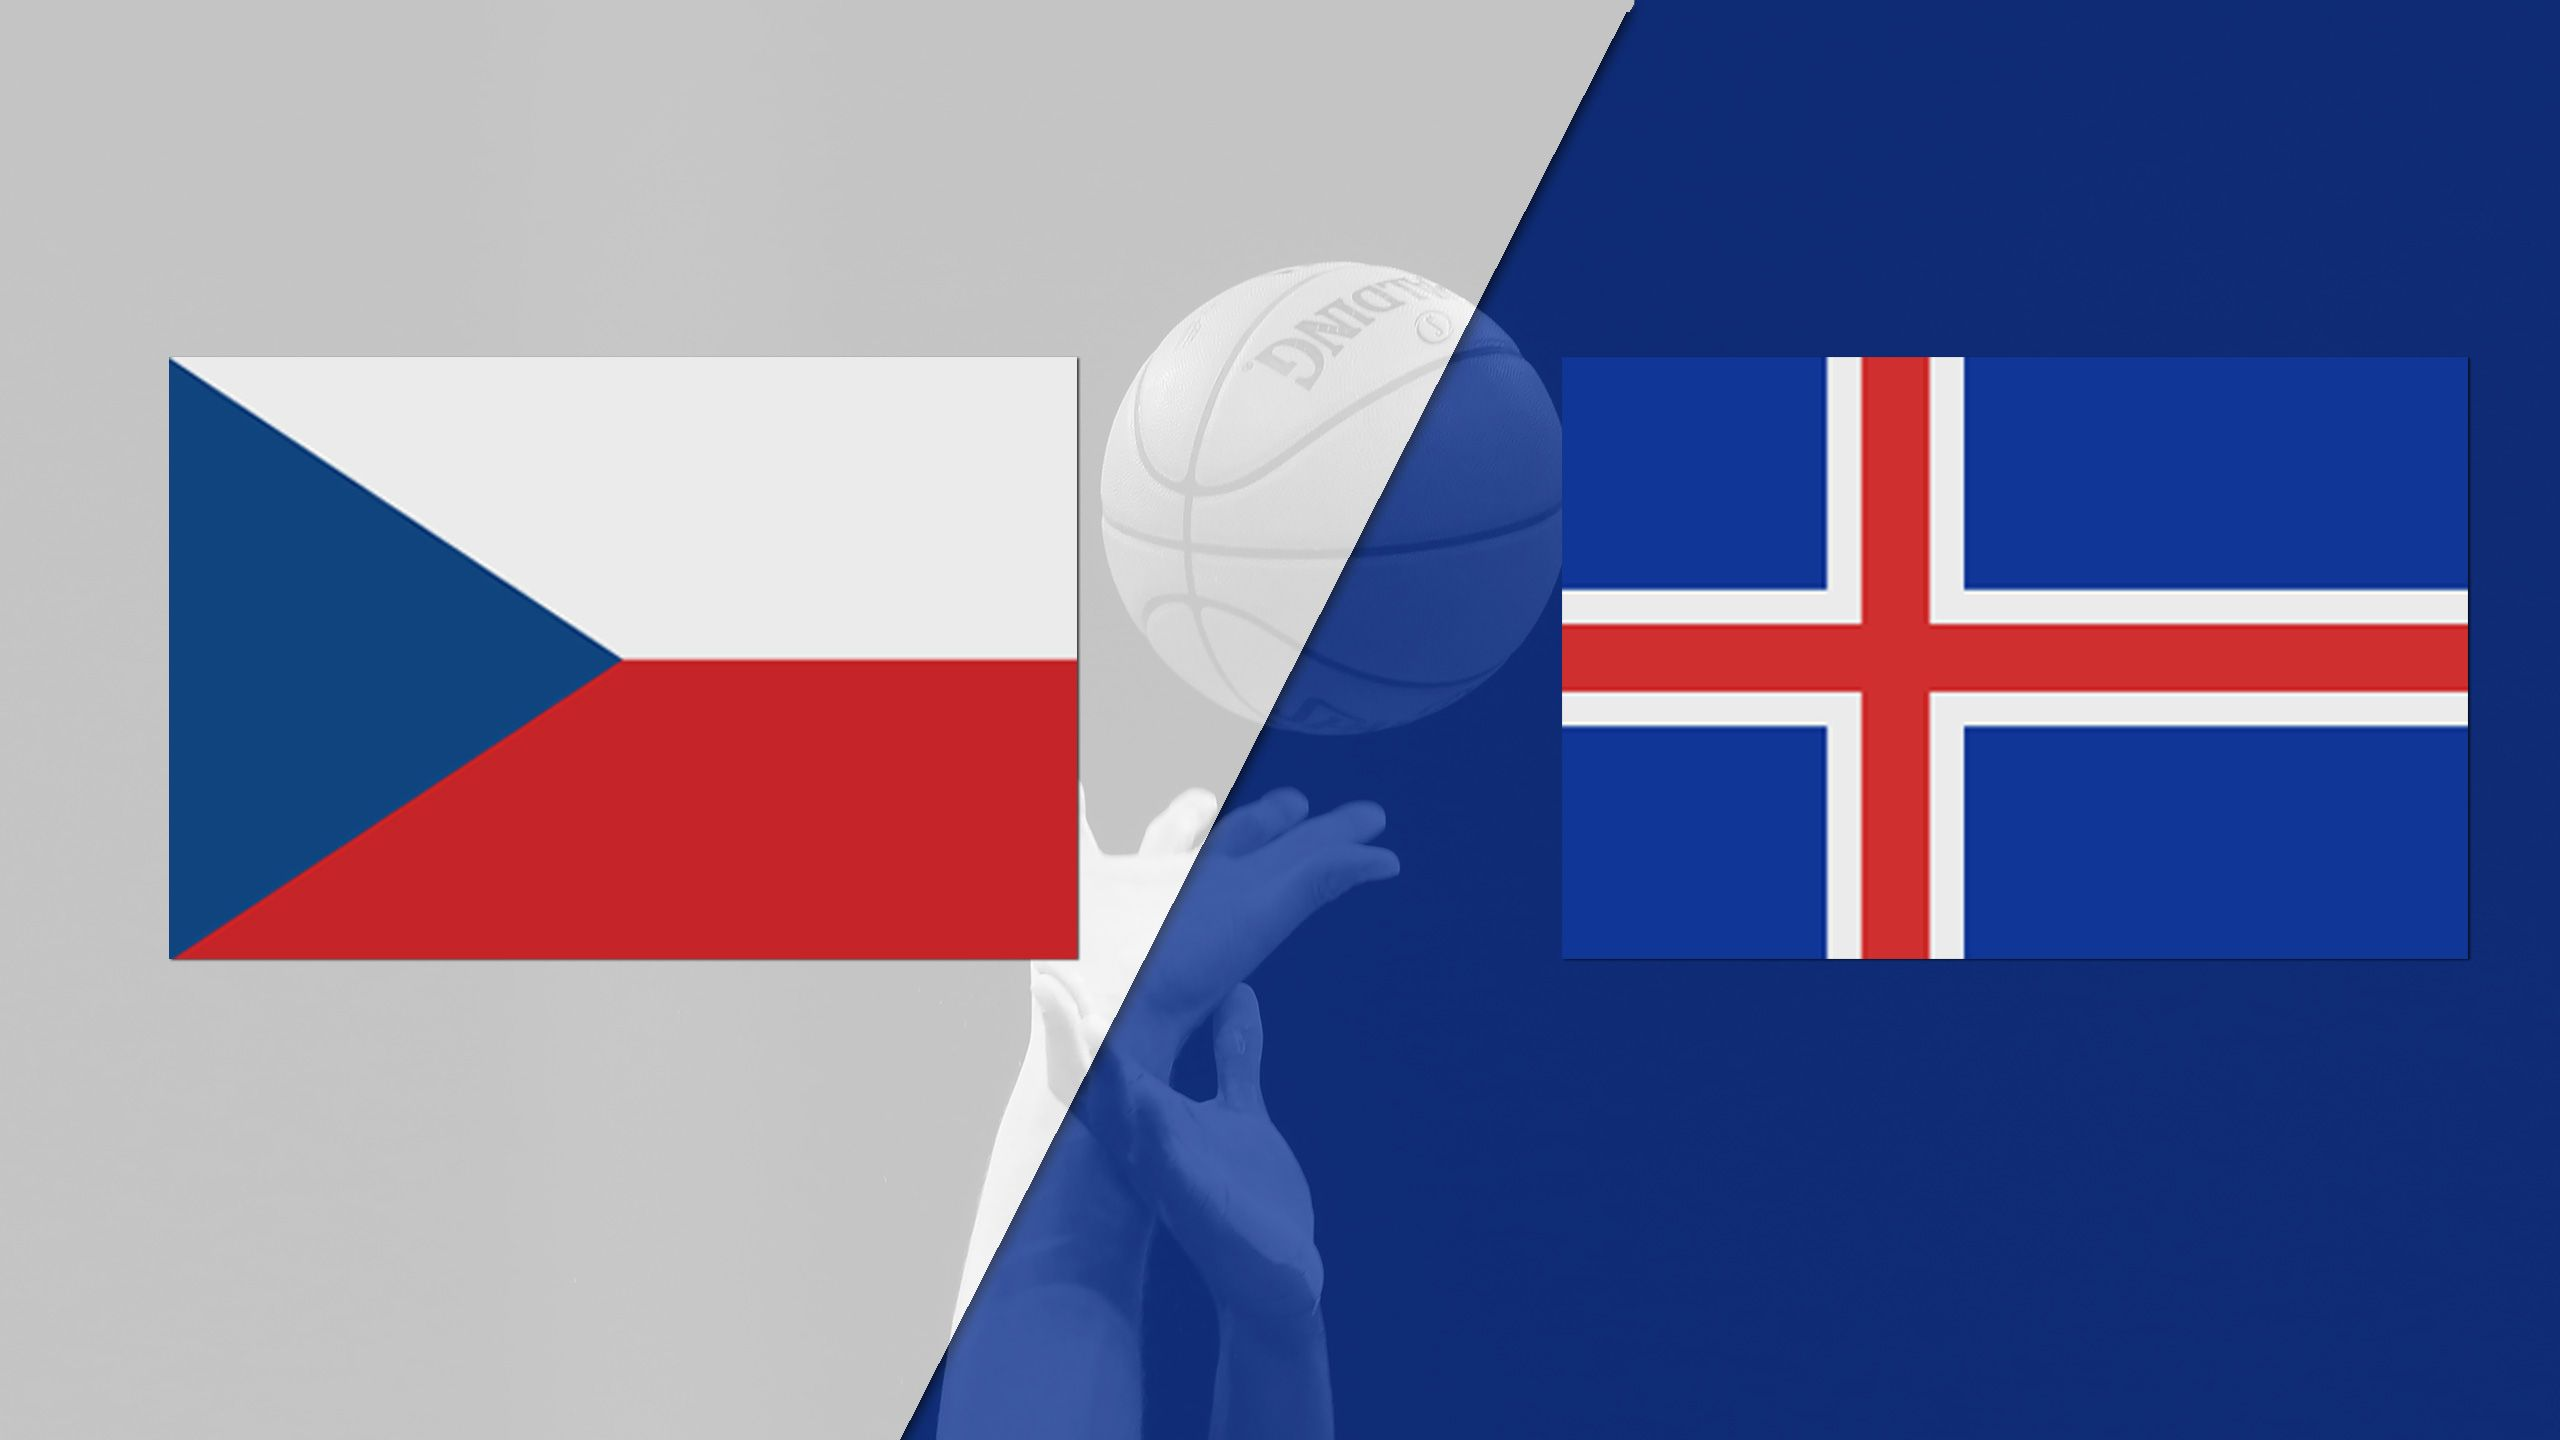 Czech Republic vs. Iceland (FIBA World Cup 2019 Qualifier)